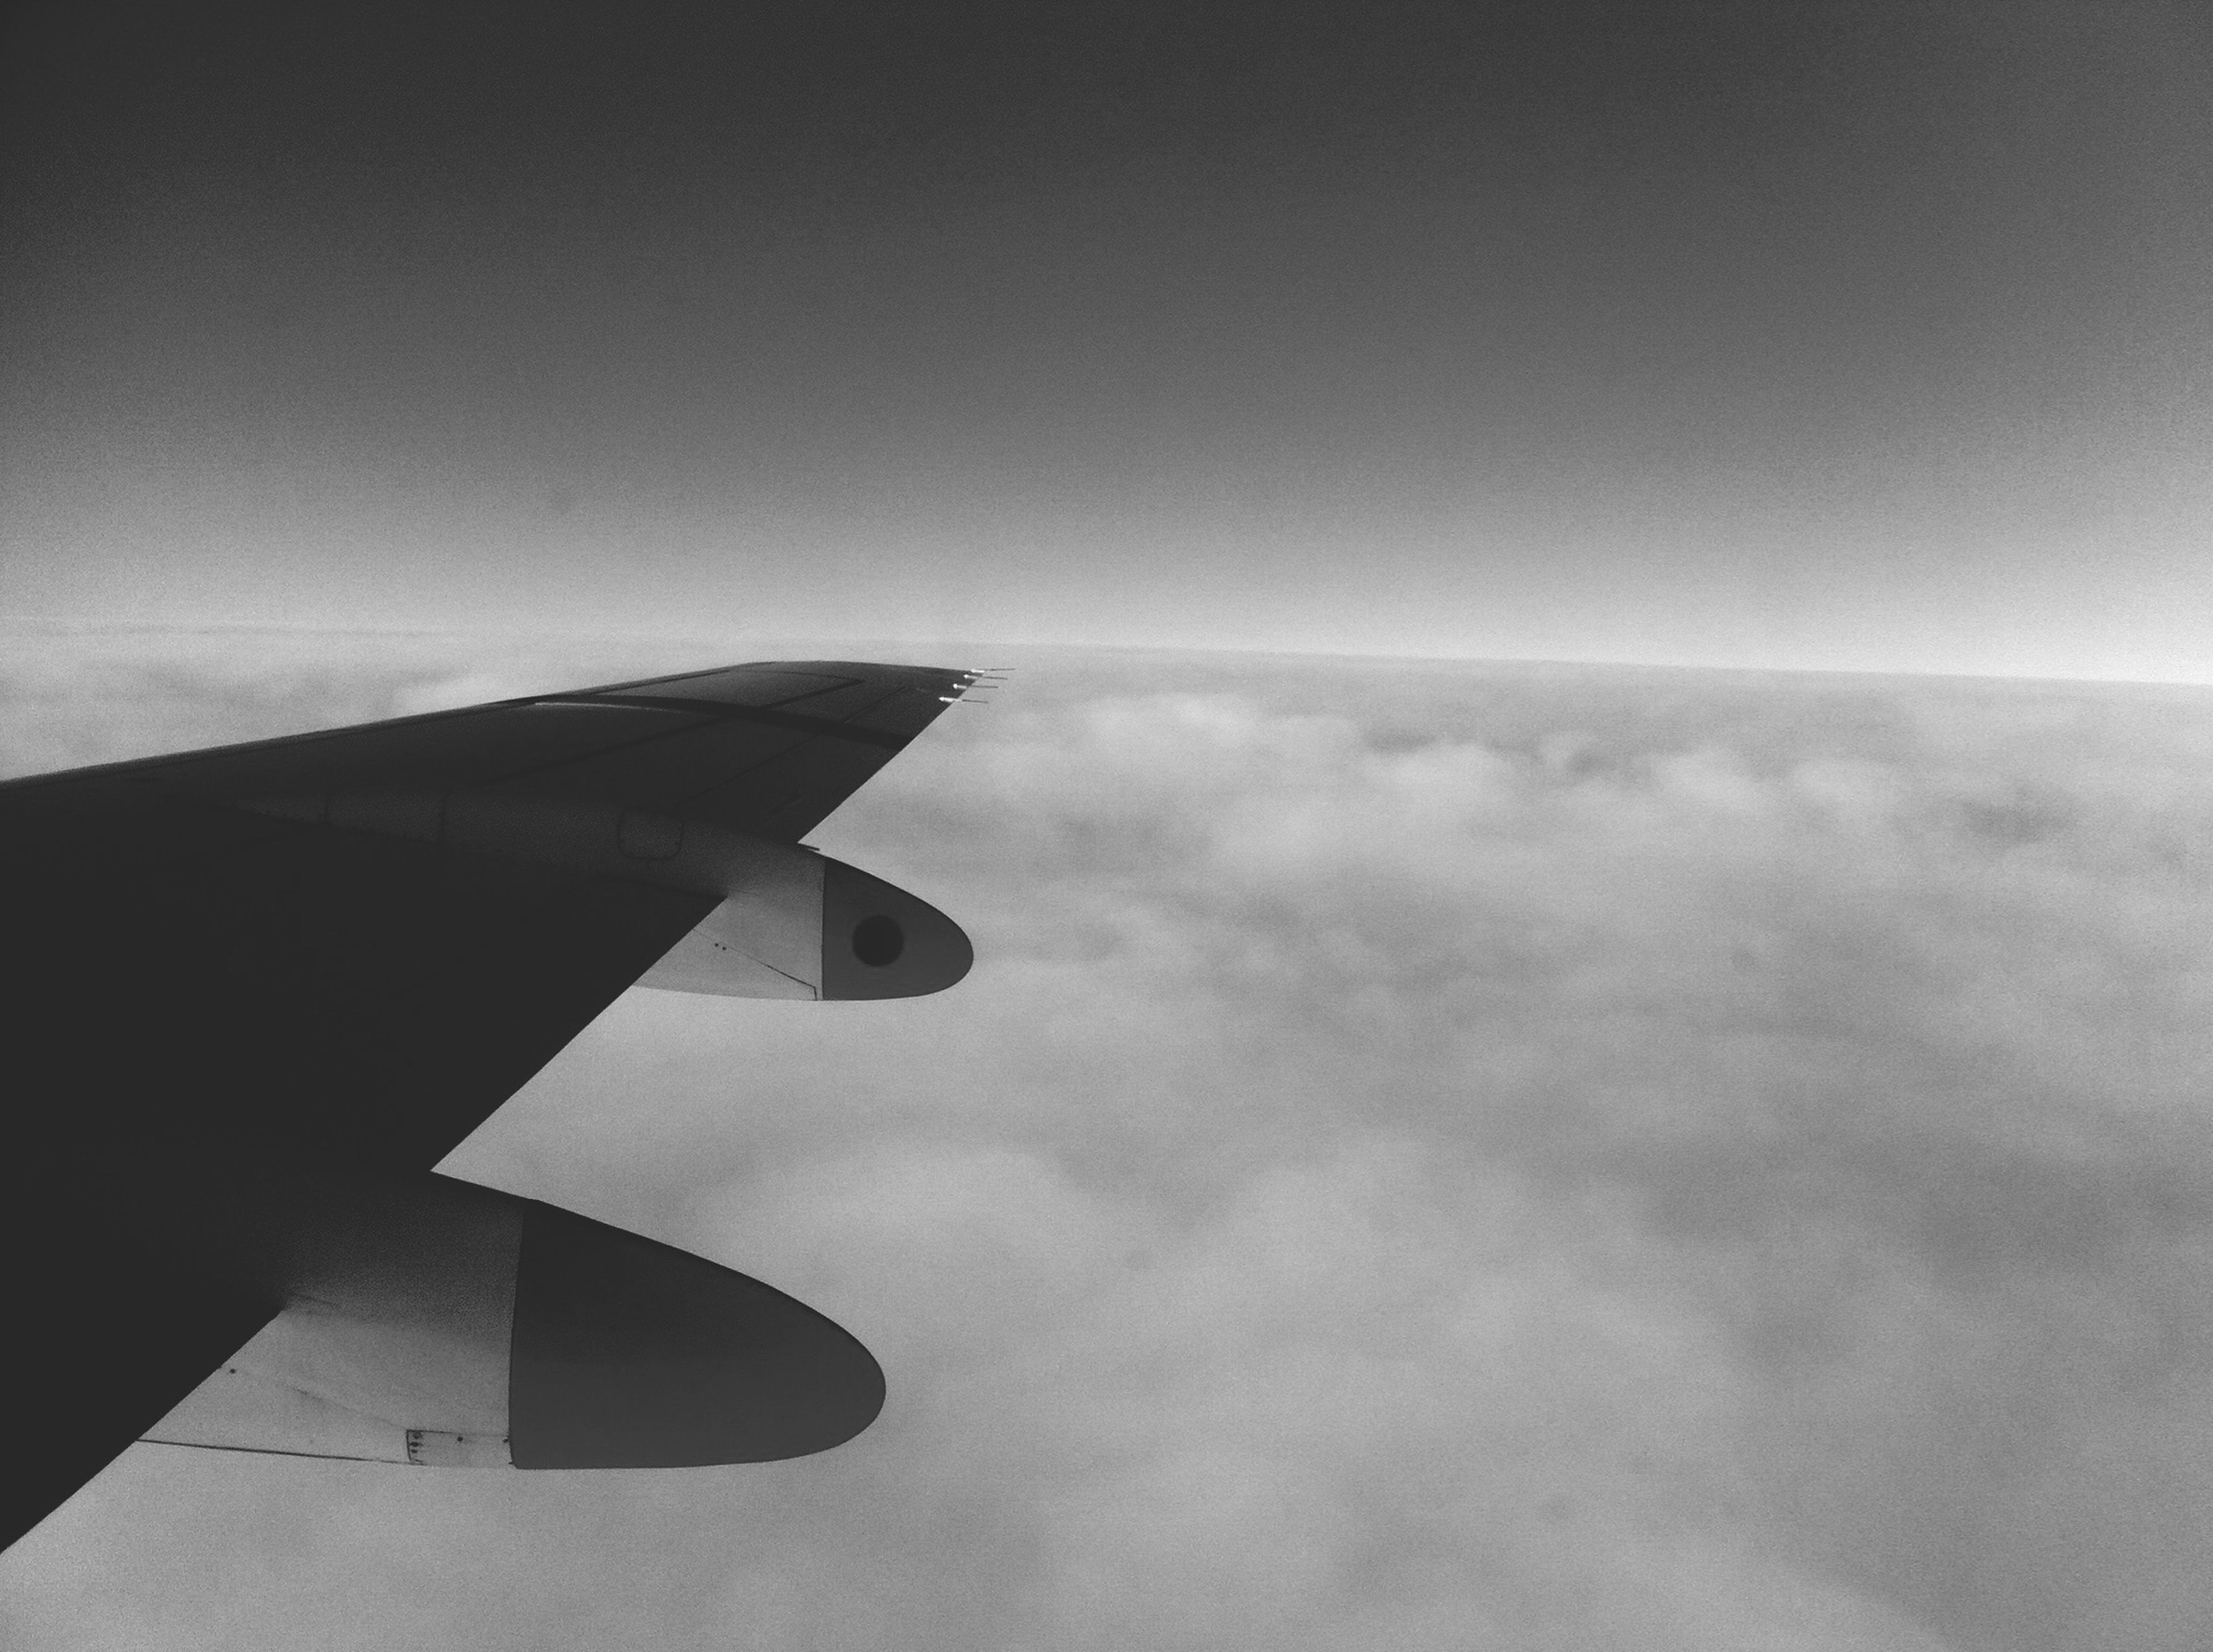 airplane, air vehicle, flying, aircraft wing, part of, sky, cropped, transportation, mode of transport, mid-air, low angle view, cloud - sky, travel, copy space, aerial view, outdoors, no people, day, cloud, journey